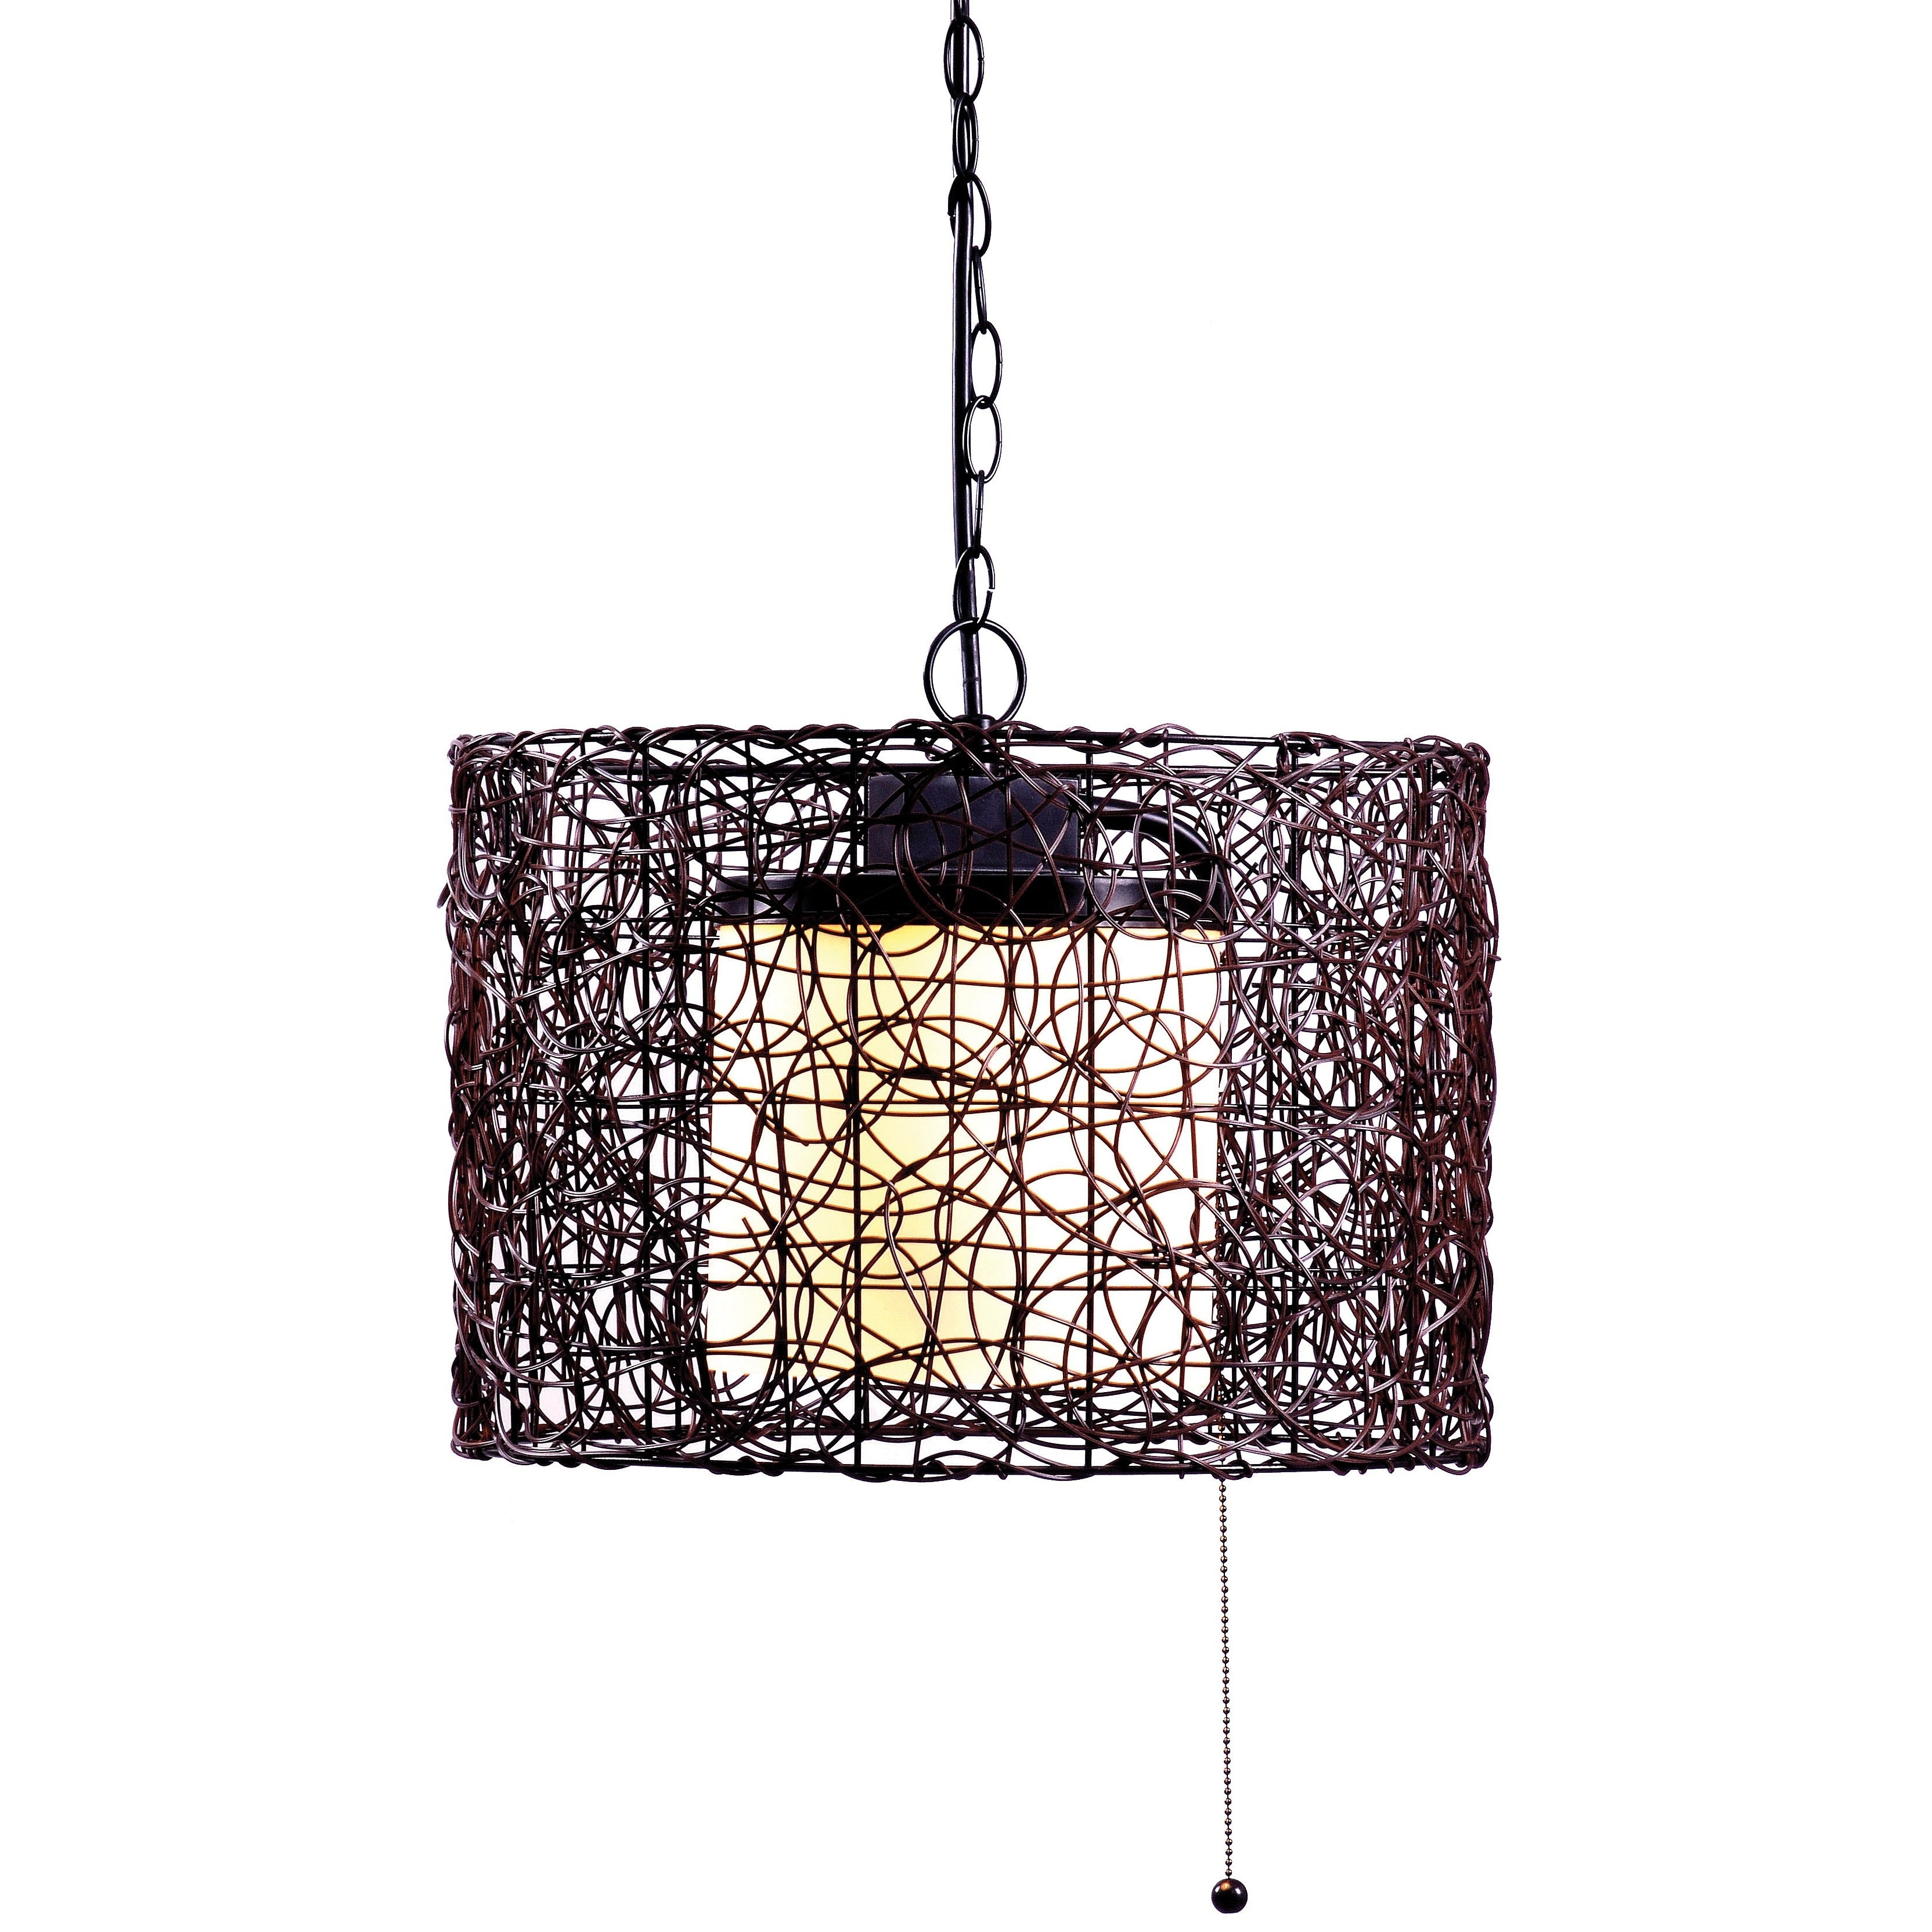 Most Current Rustic Outdoor Lighting At Wayfair Throughout Rustic Outdoor Hanging Lights Wayfair Rosalind 47 Light Pendant (View 13 of 20)